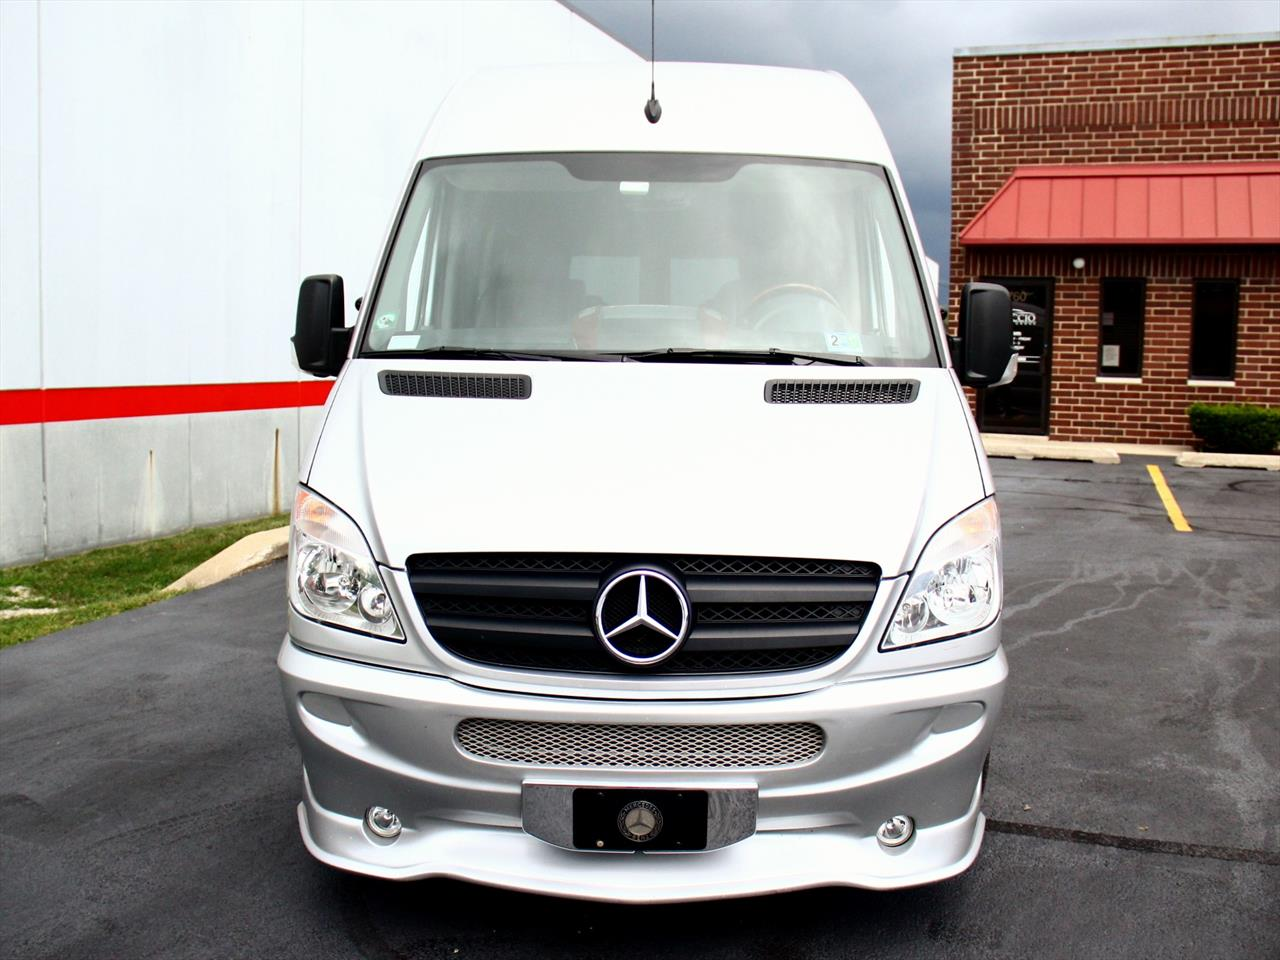 2009 mercedes benz sprinter 2500 for Mercedes benz sprinter 2500 mpg